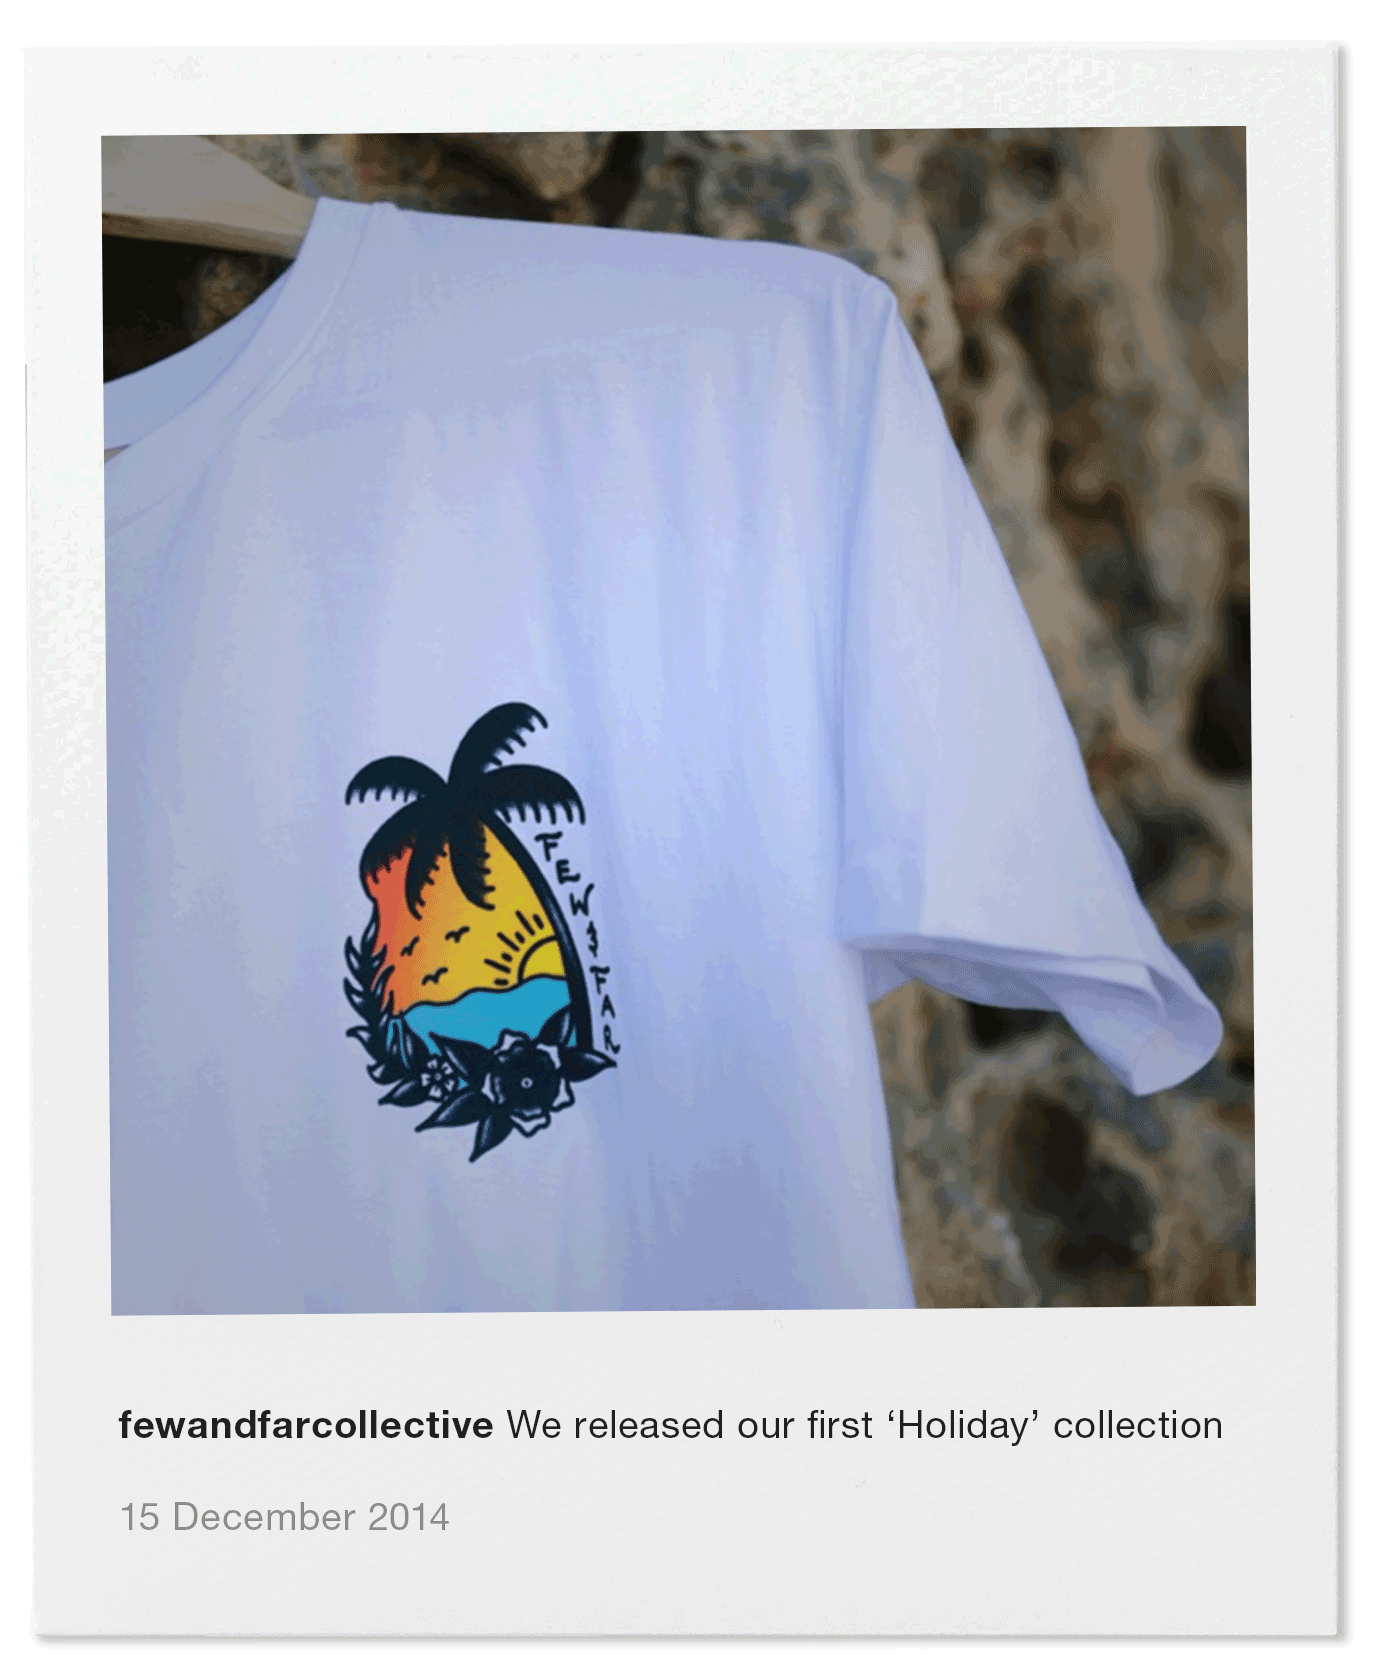 We released our first 'Holiday' collection